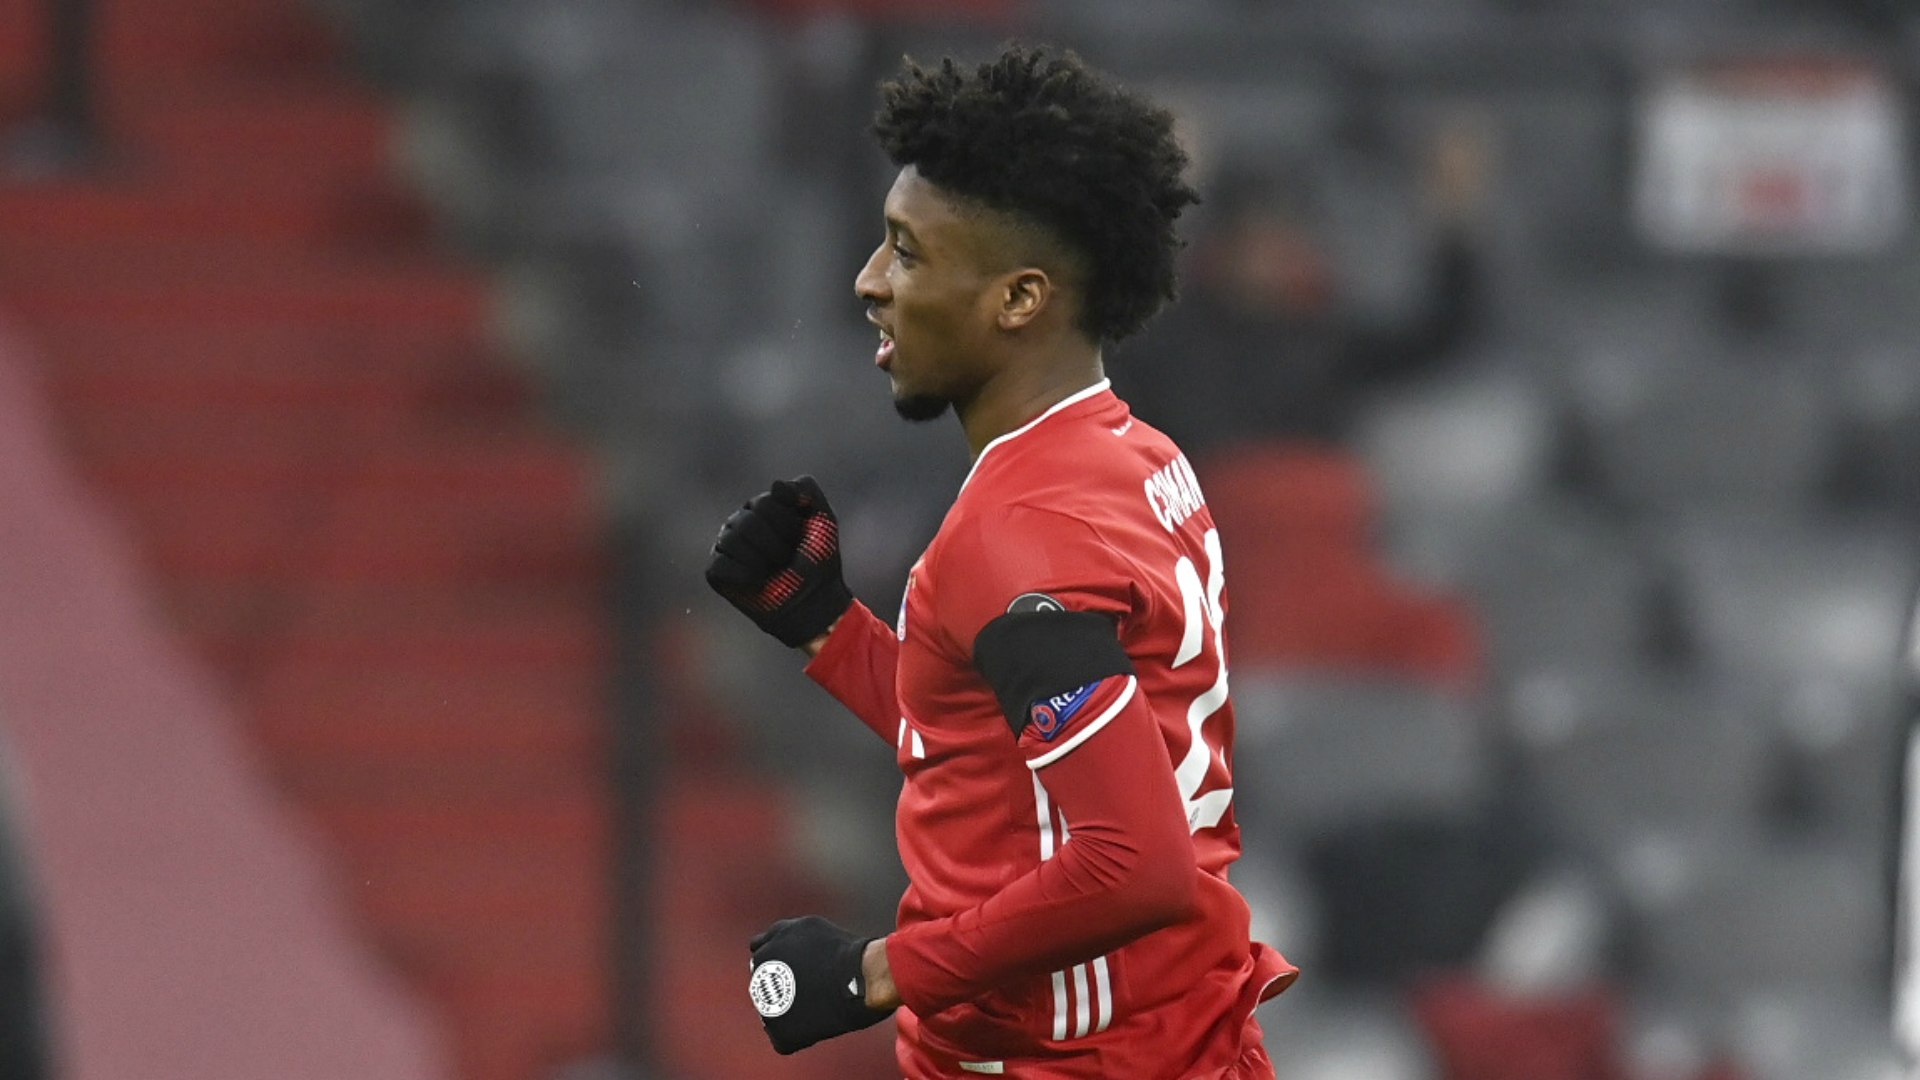 Coman 'not for sale', says Bayern CEO Rummenigge